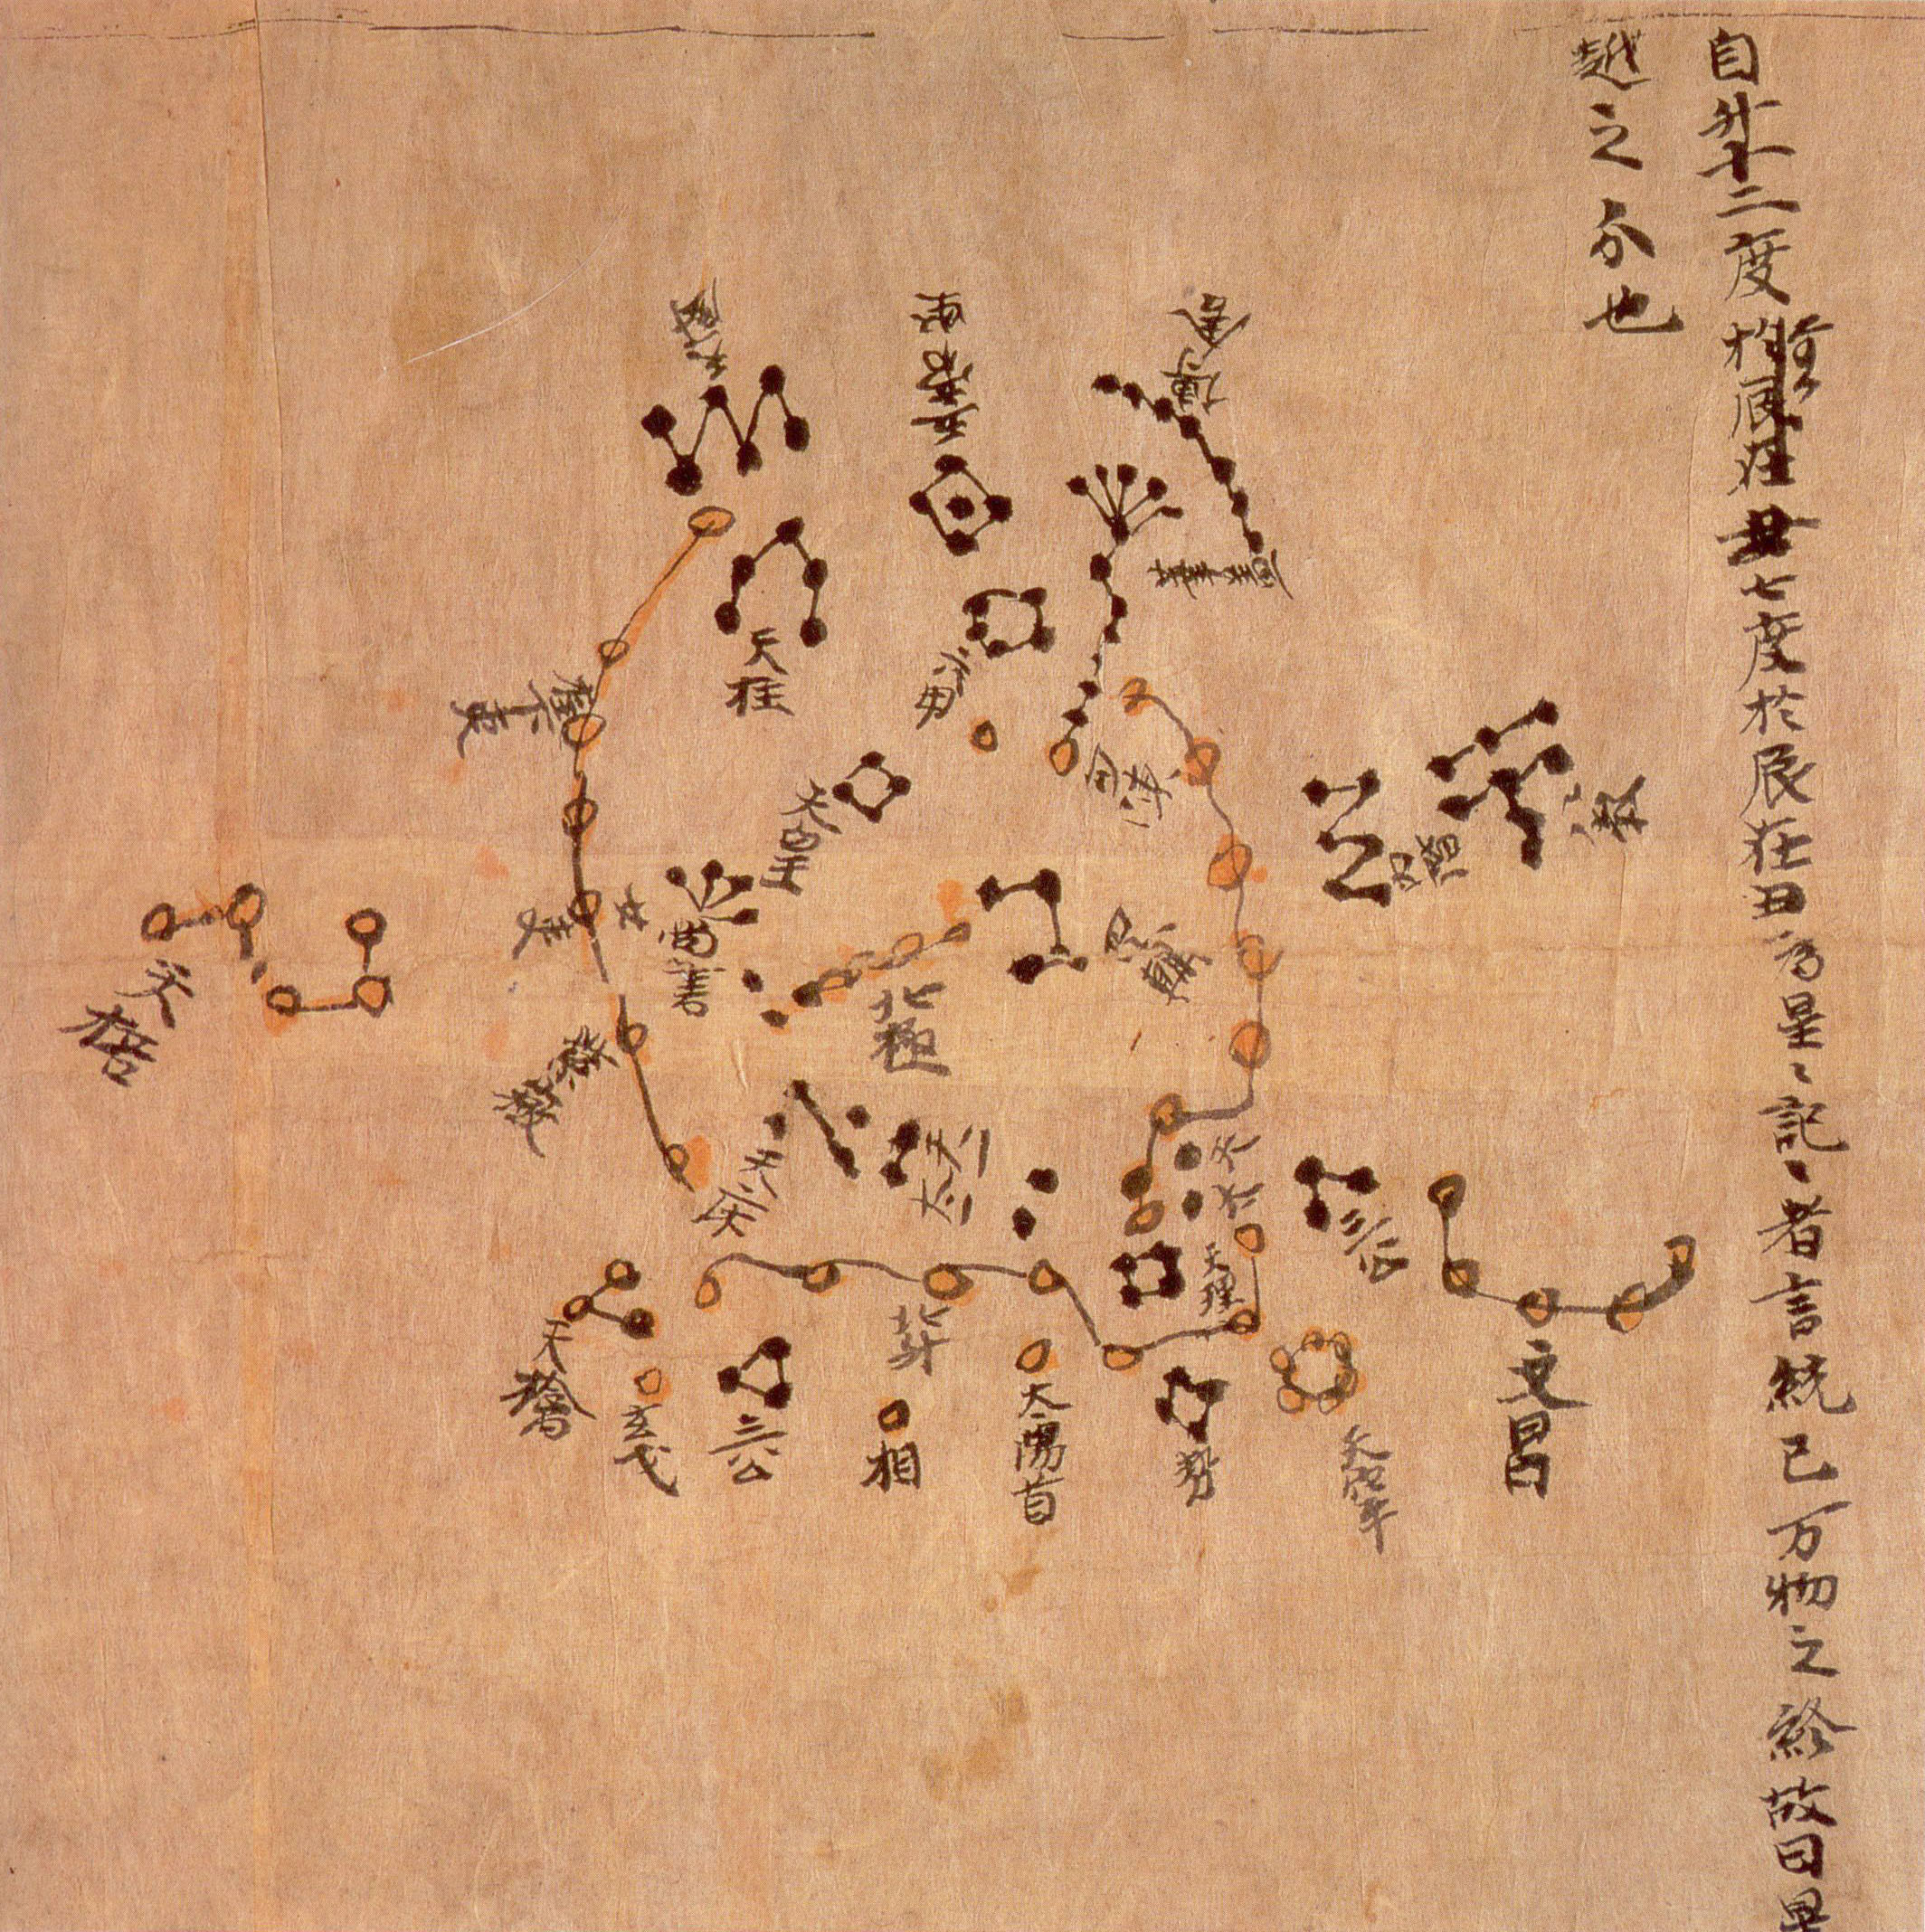 Chinese Astrology Chart Years: Dunhuang star map.jpg - Wikimedia Commons,Chart